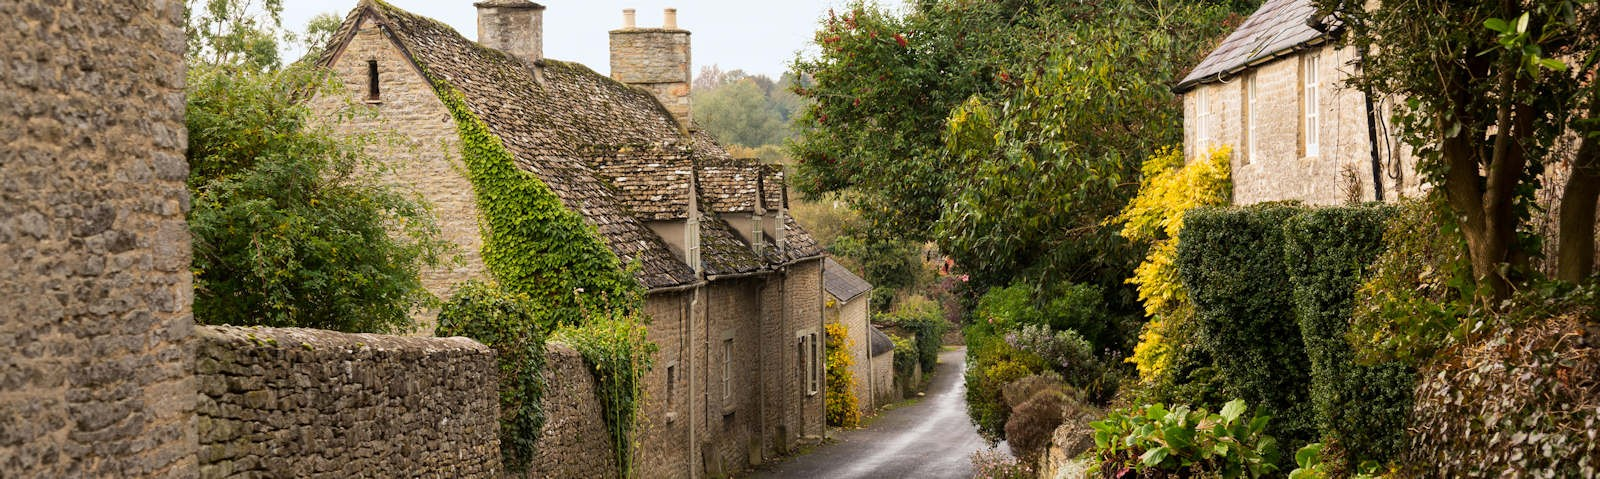 Oxfordshire village street with cottages